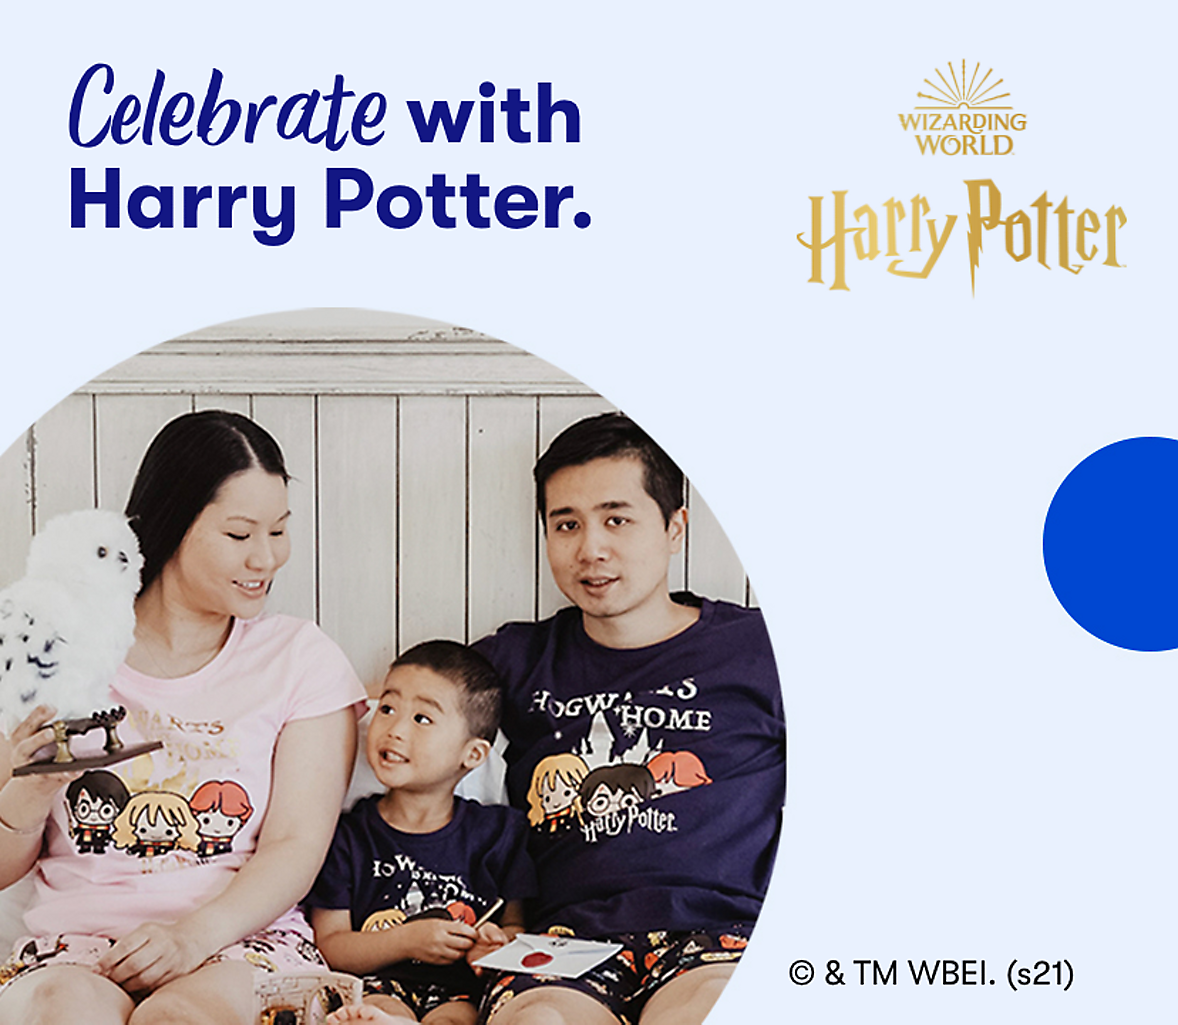 Celebrate 20 years of Harry Potter